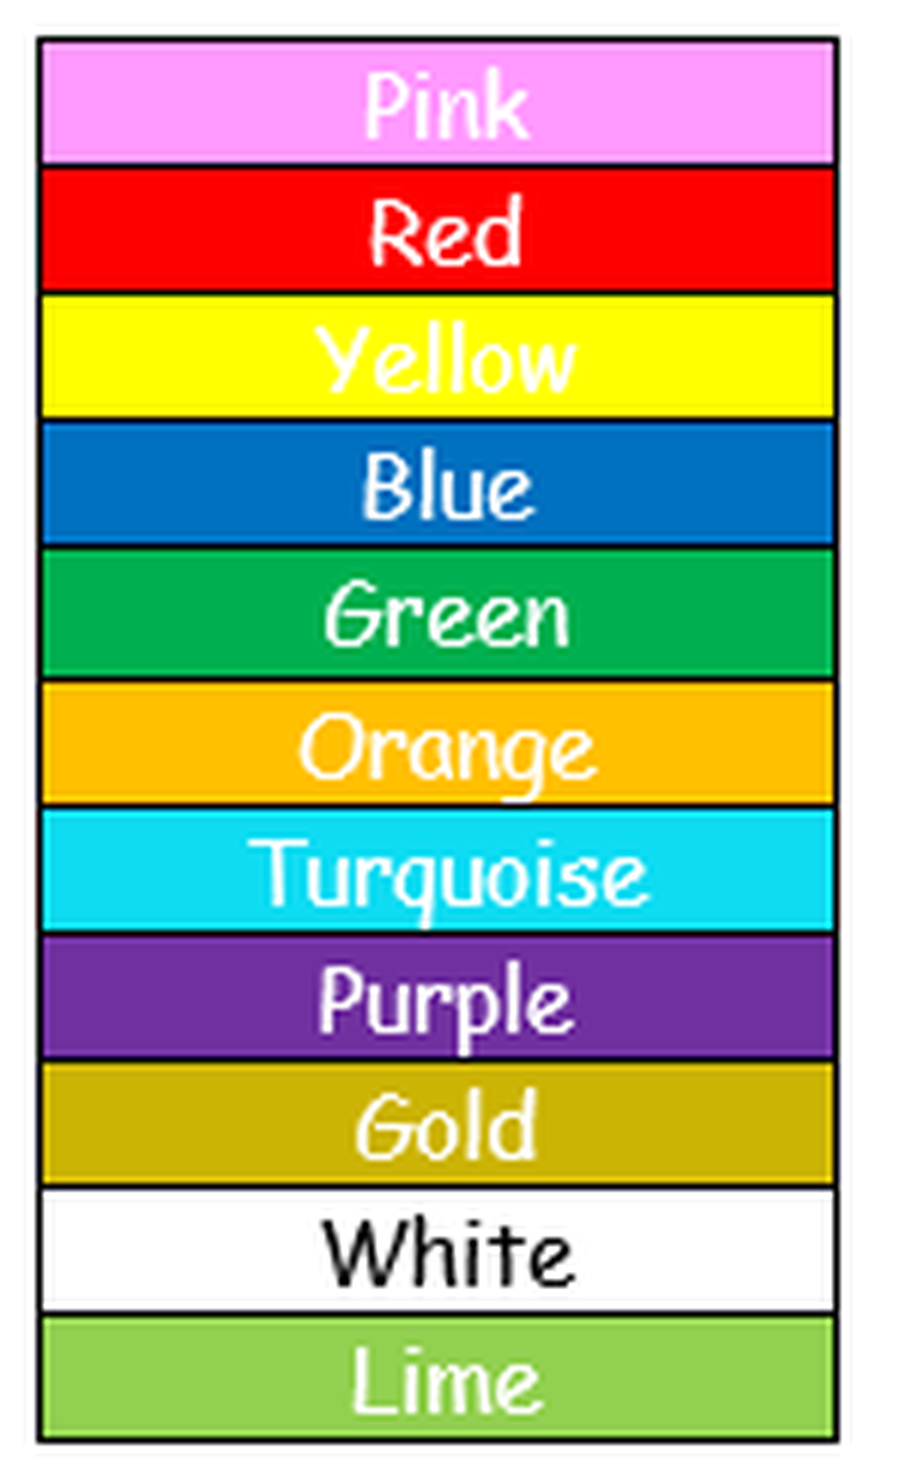 Colour book bands ks1 - Ks1 Books Are Organised By Book Band Colours Below You Will Find A List Of Book Band Colours In Order Of Difficulty Starting From The Simplest Text